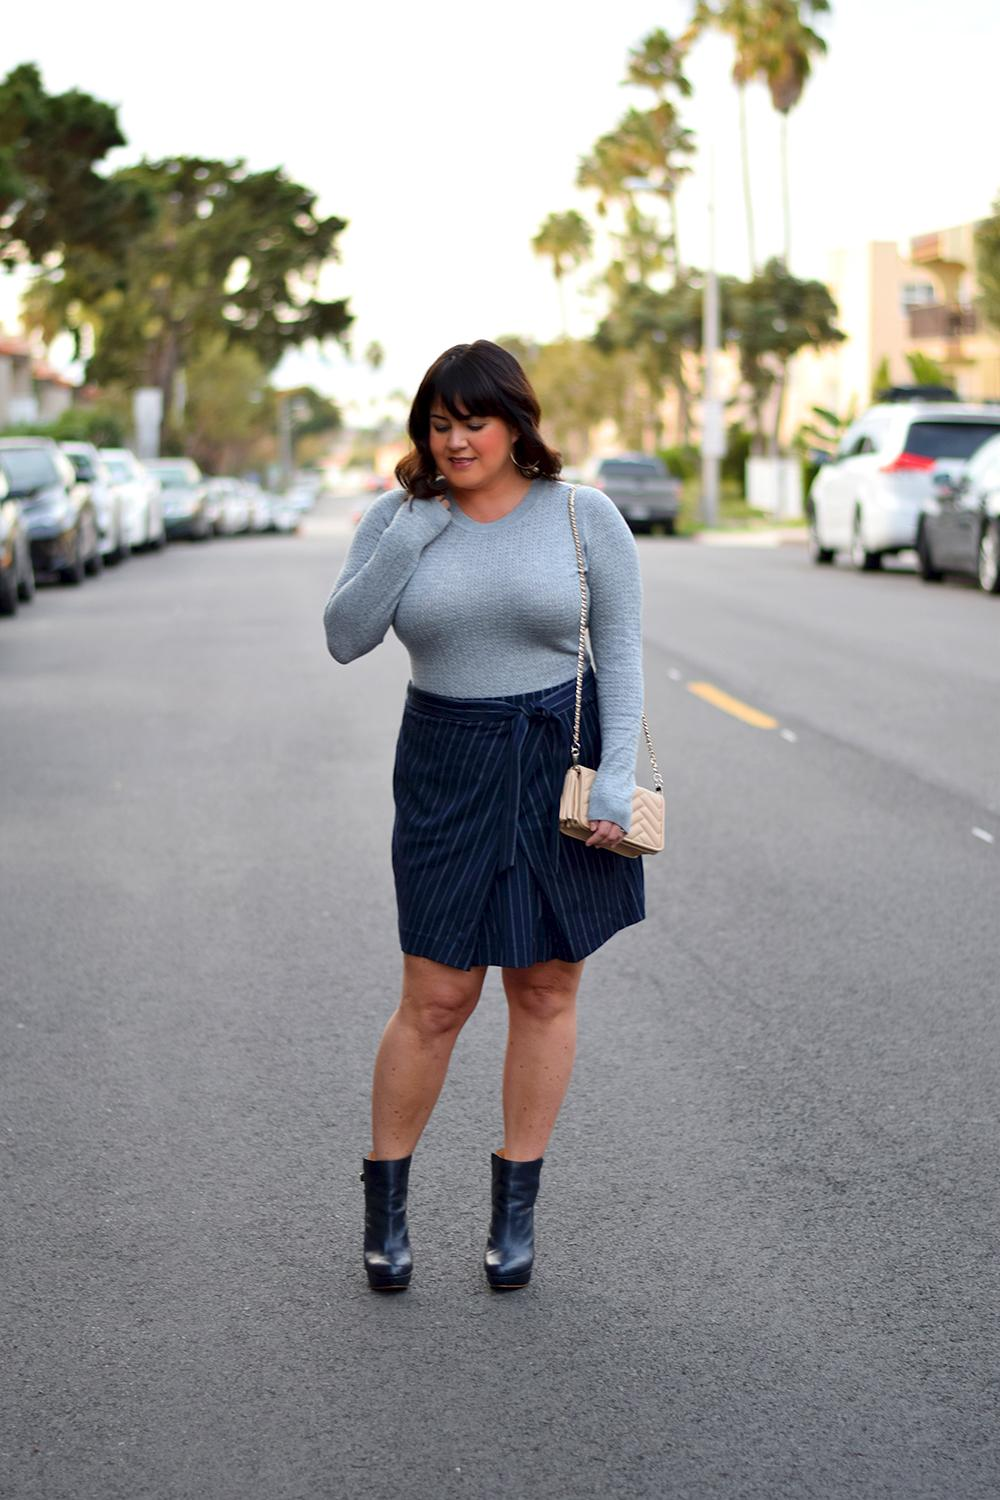 Blue-Pinstriped-Skirt-and-Platform-Booties-Outfit-Barefoot-in-LA-Fashion-Blog-Style-Ideas-0006